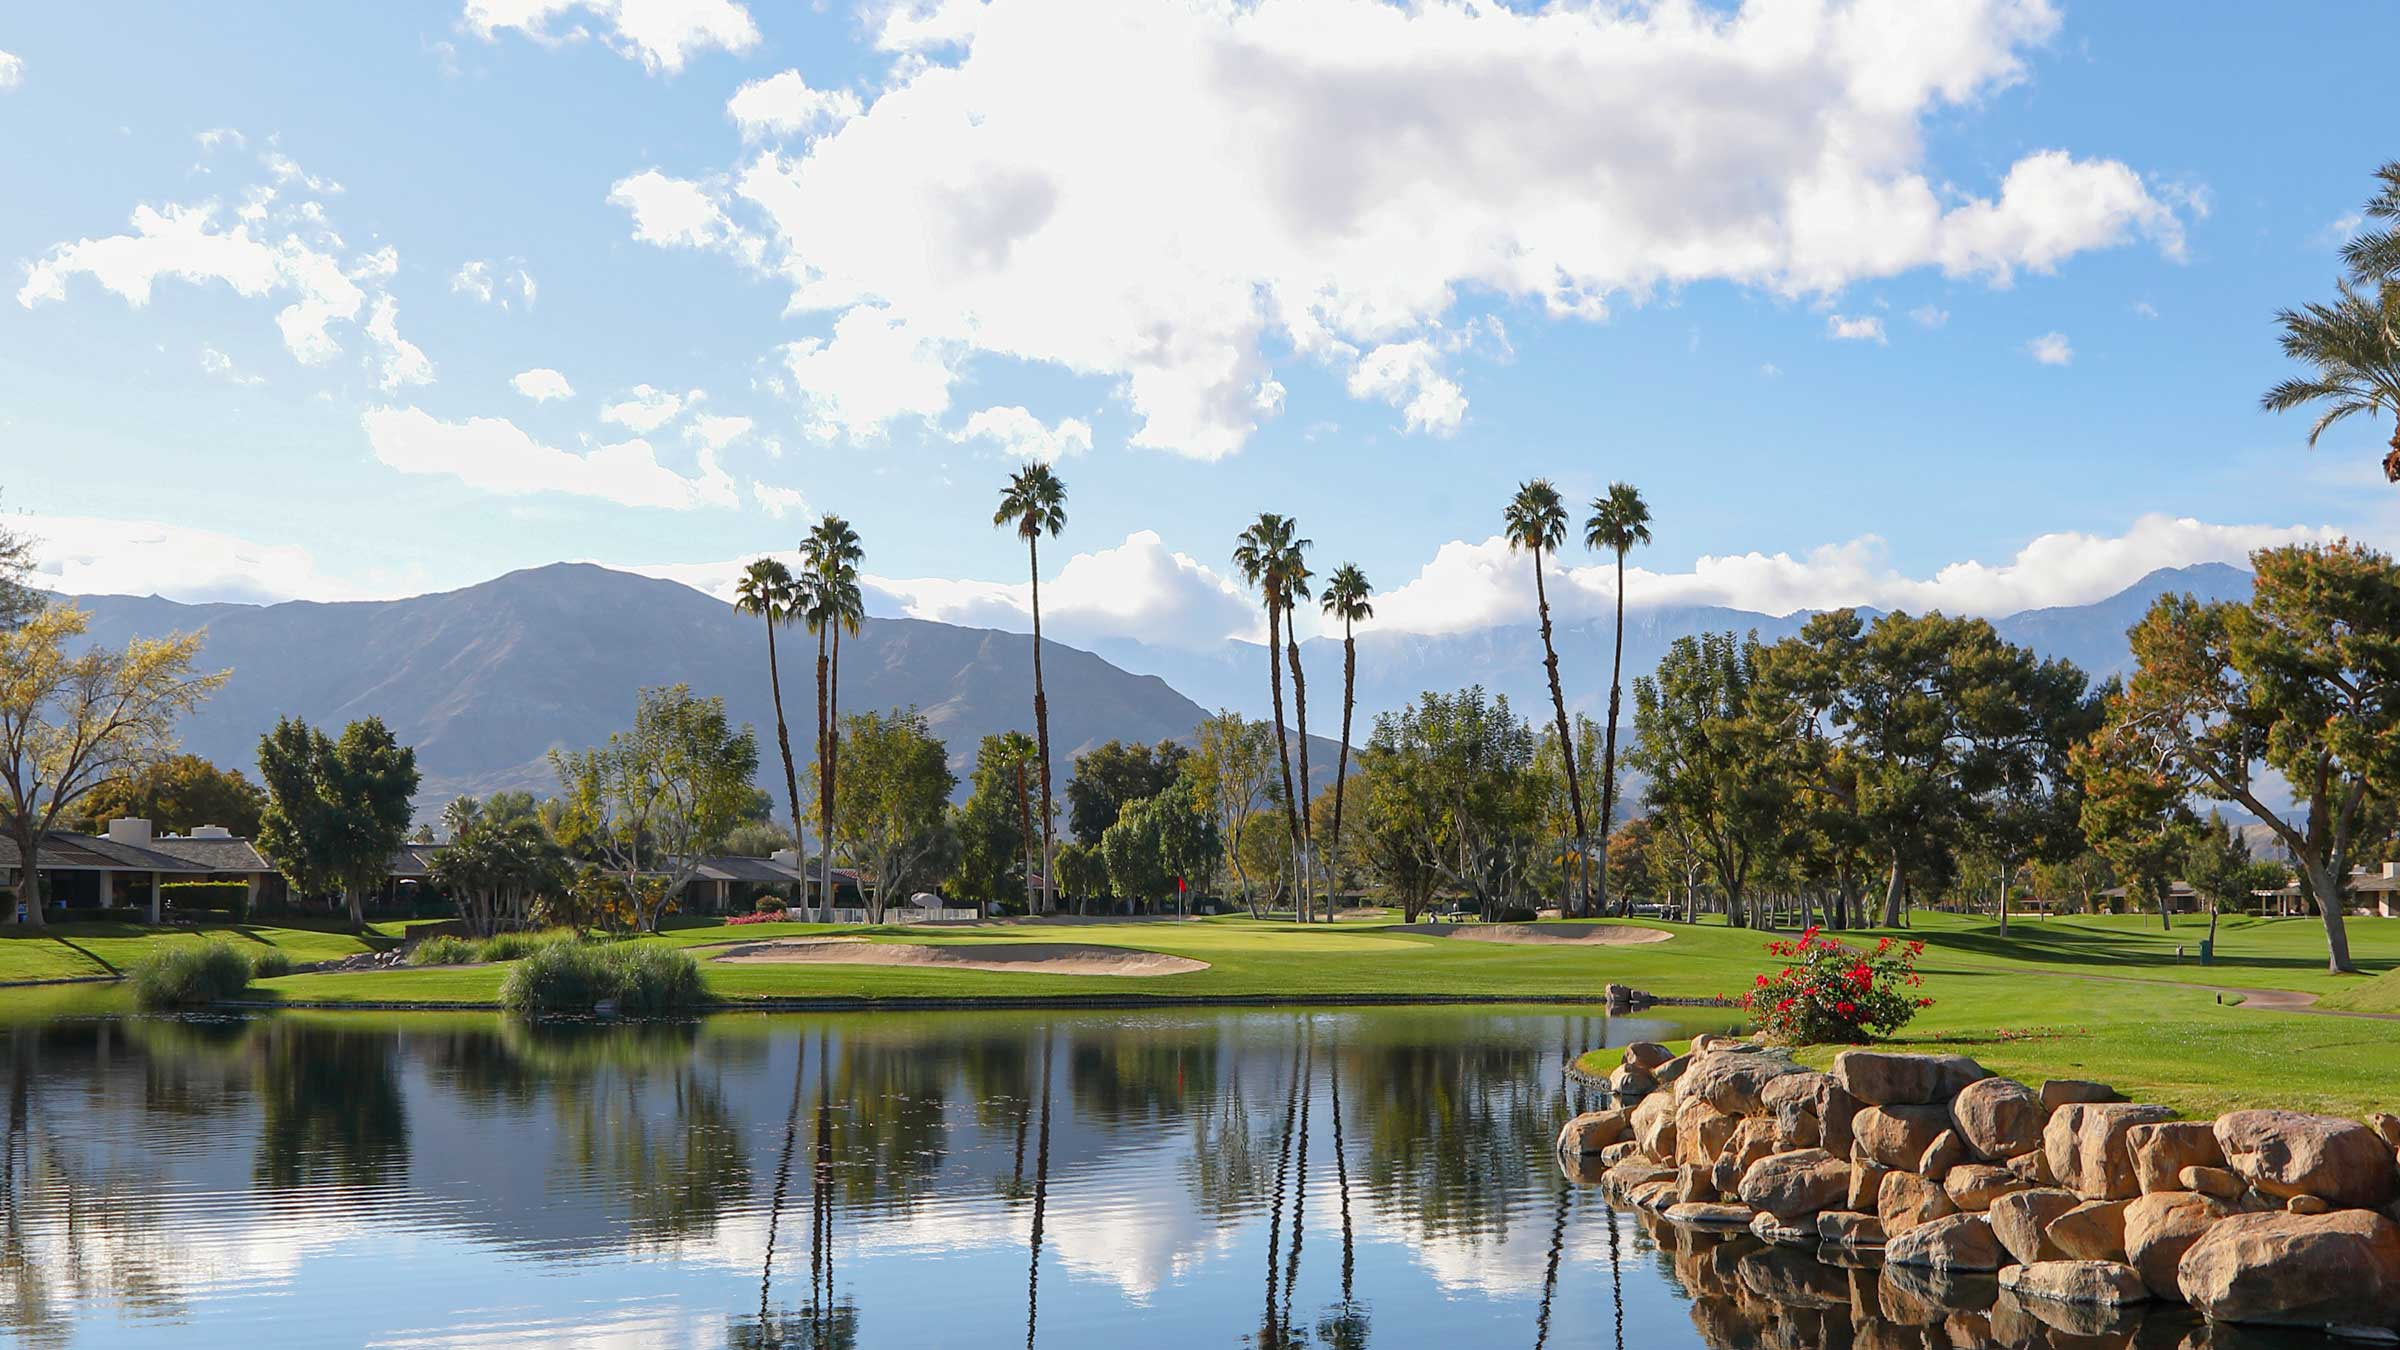 Private Golf Course at The Springs Country Club in Rancho Mirage, CA